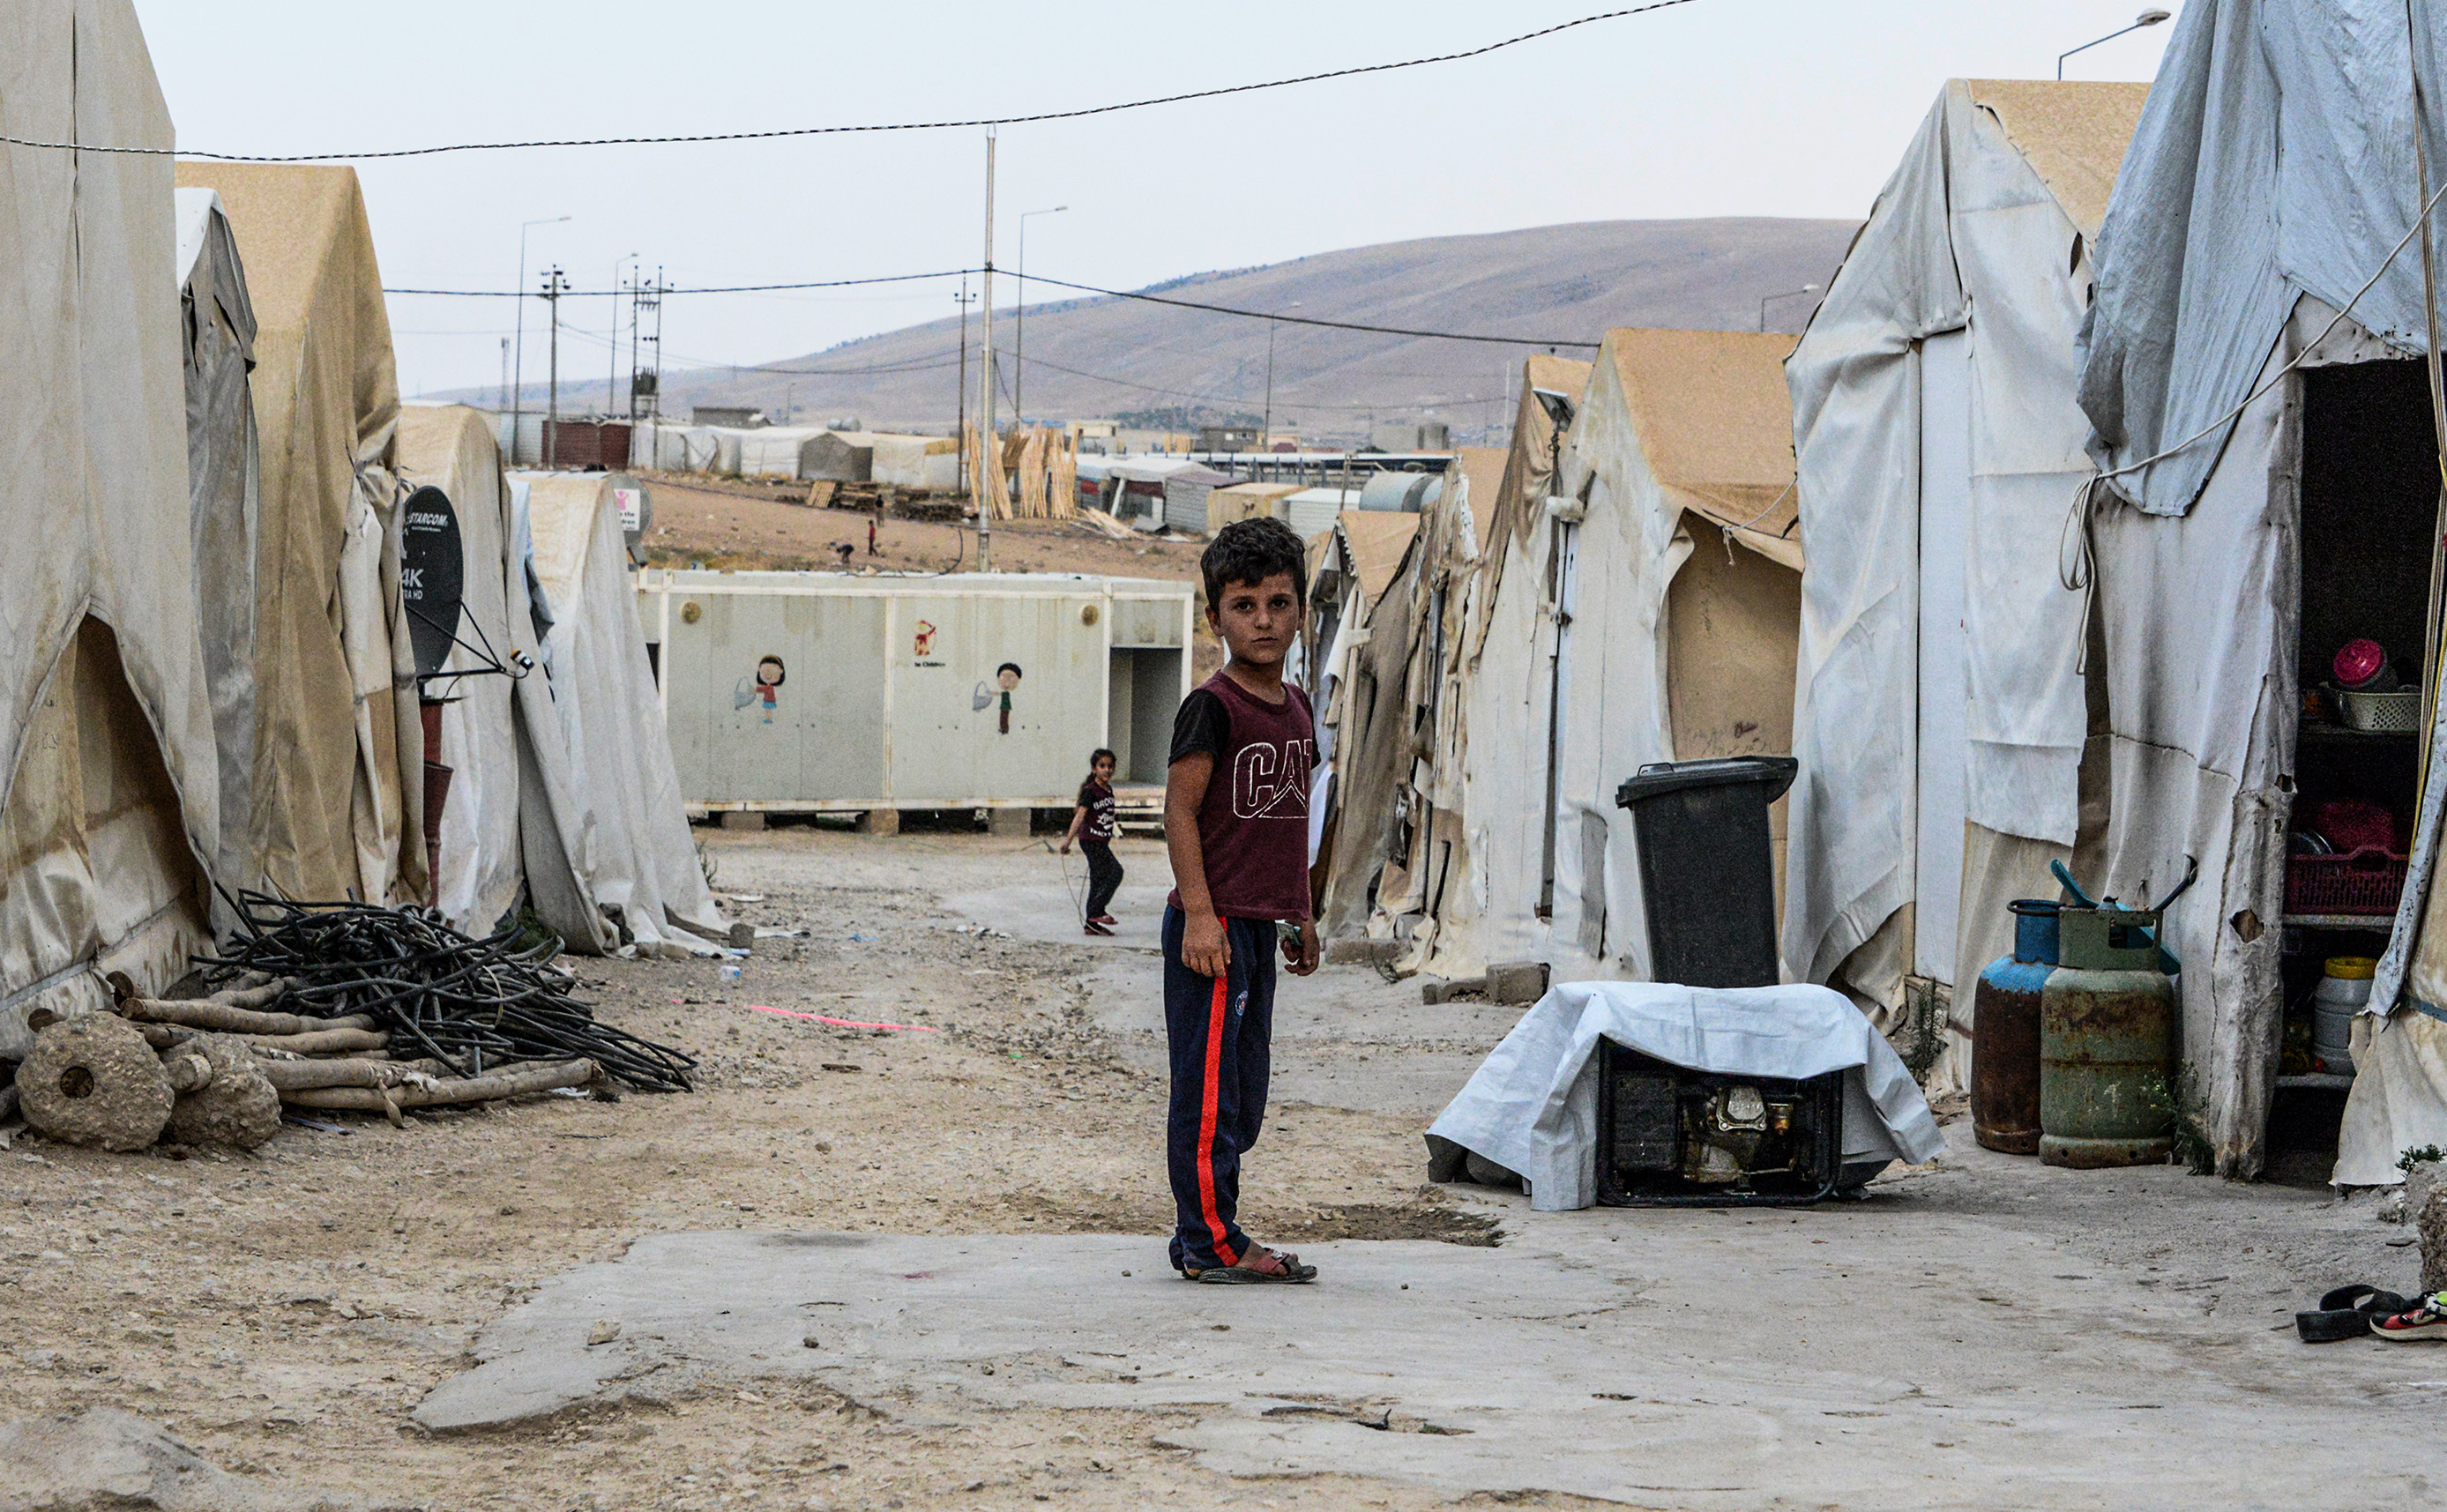 A boy stands between tents at a camp for internally displaced persons (IDP) of Iraq's Yazidi minority in the Sharya area, some 15 kilometres from the northern city of Dohuk in the autonomous Iraqi Kurdistan region on August 30, 2019.